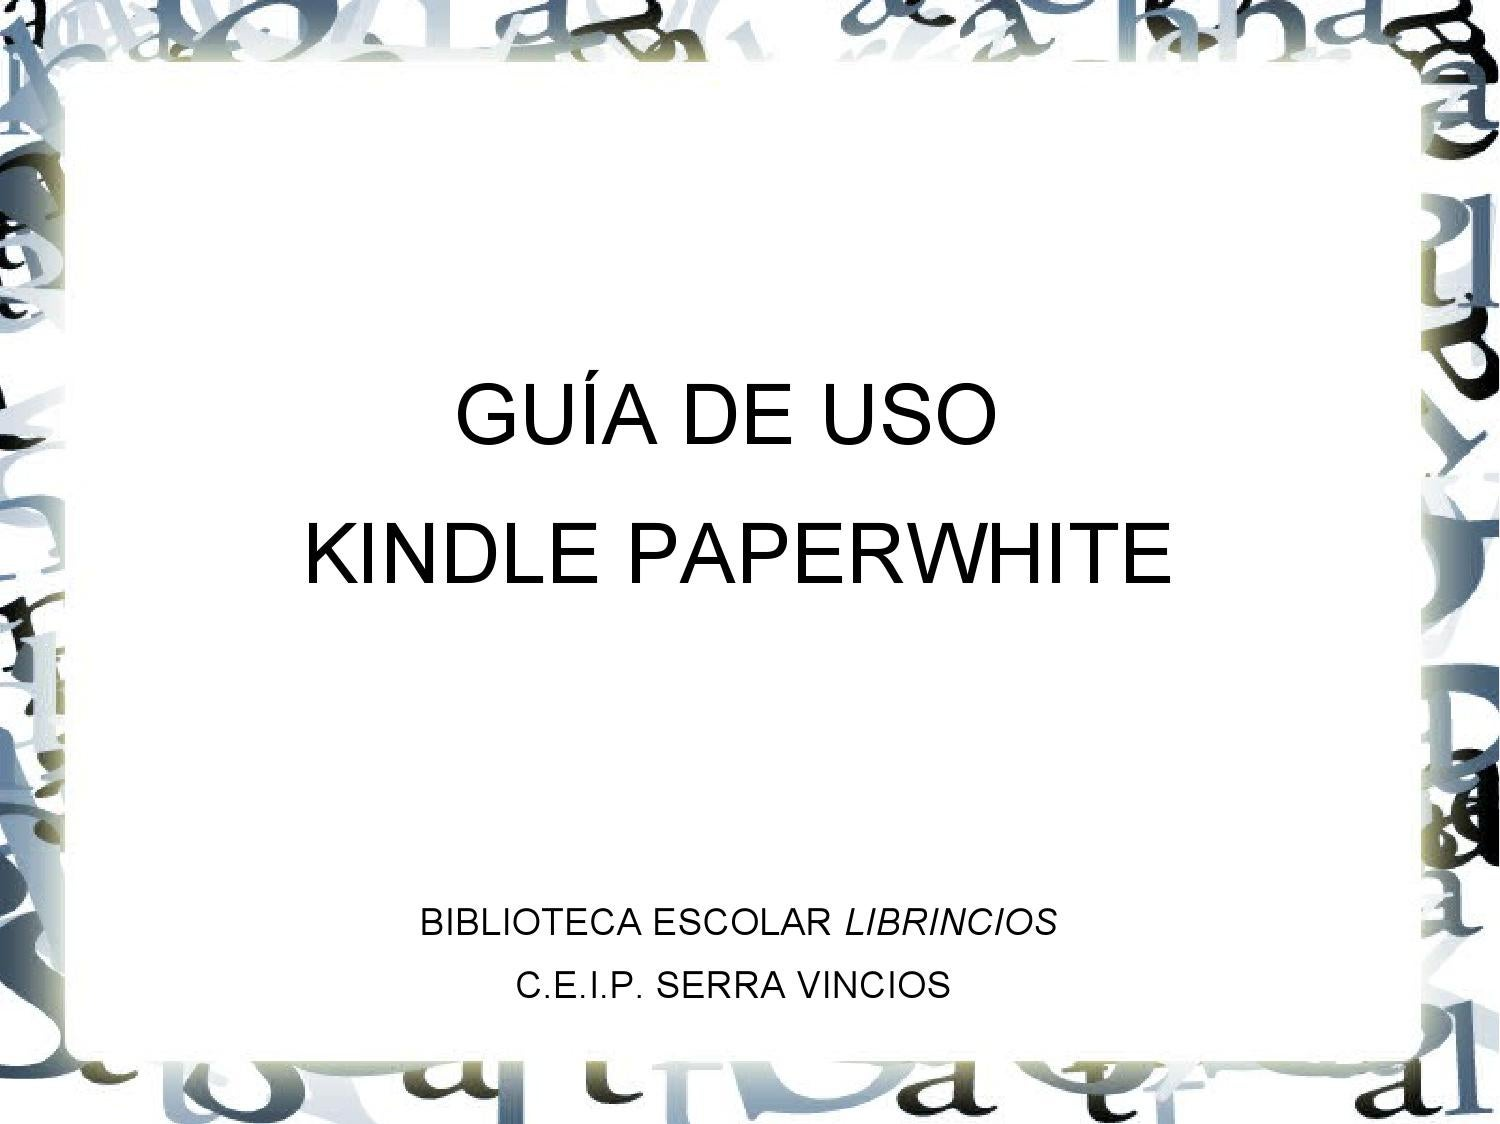 Formato De Libros Kindle Guía Kindle Paperwite By Irene Miñambres Issuu